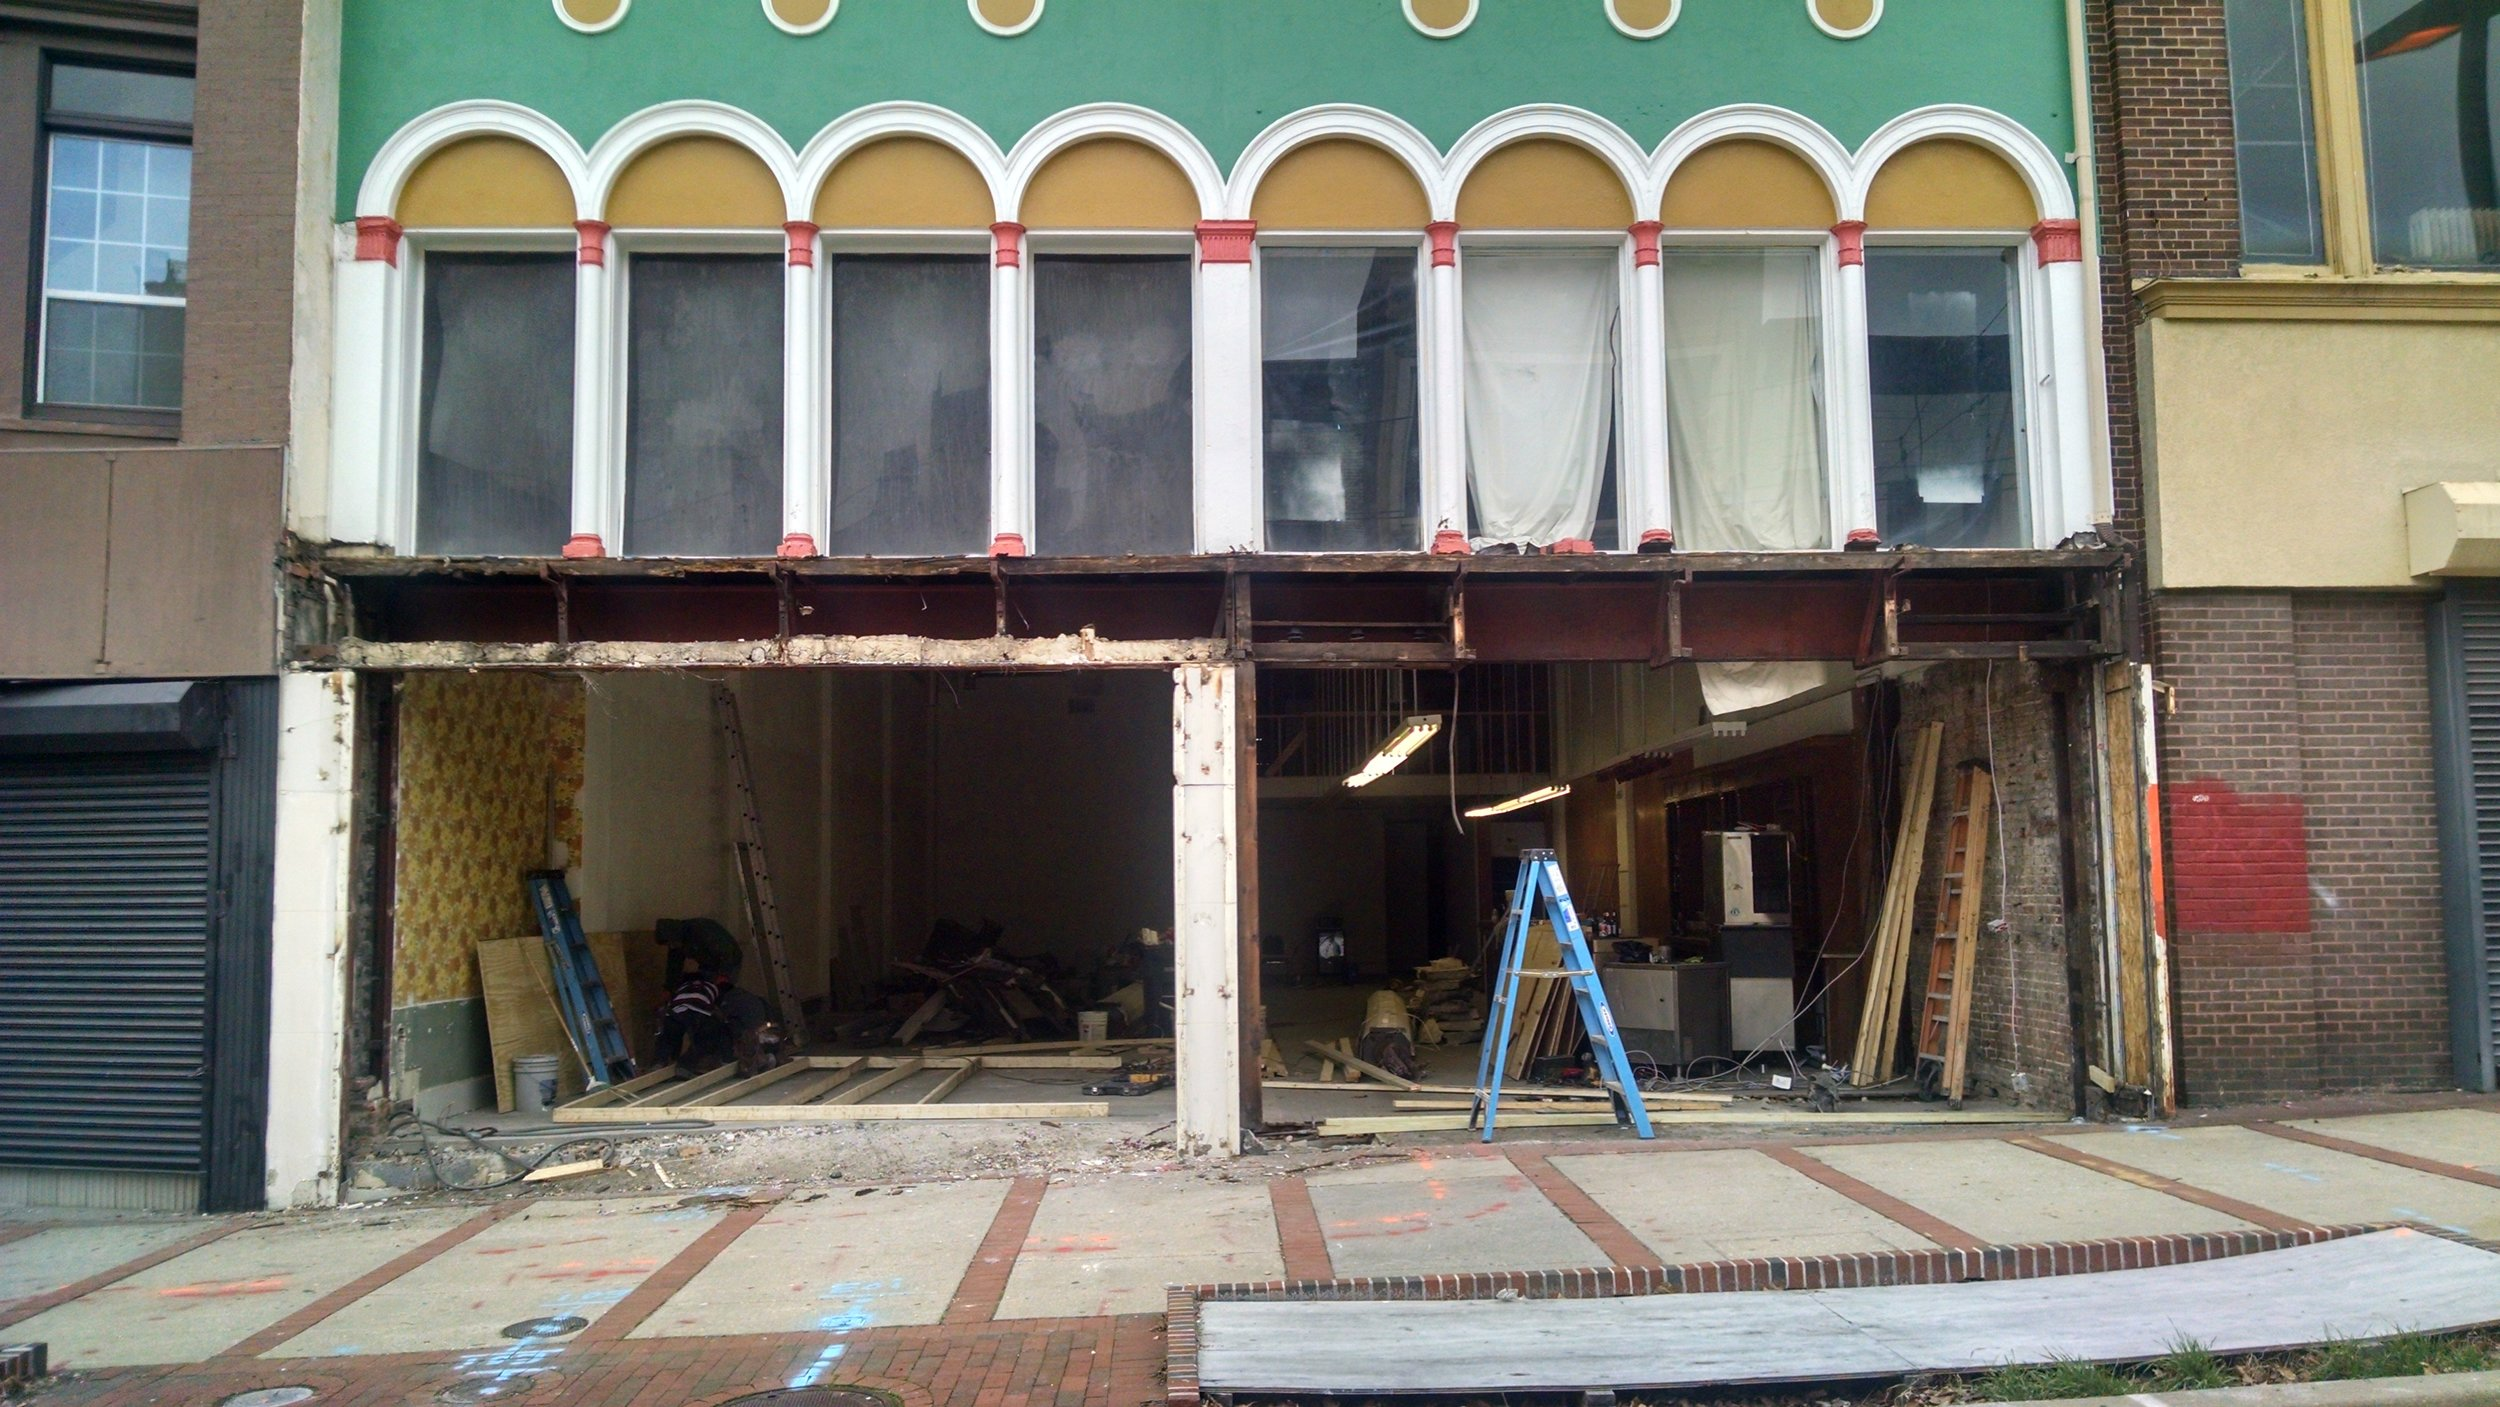 PeekaBoo!  We ripped out the old storefront and are replacing it with a historically appropriate one!